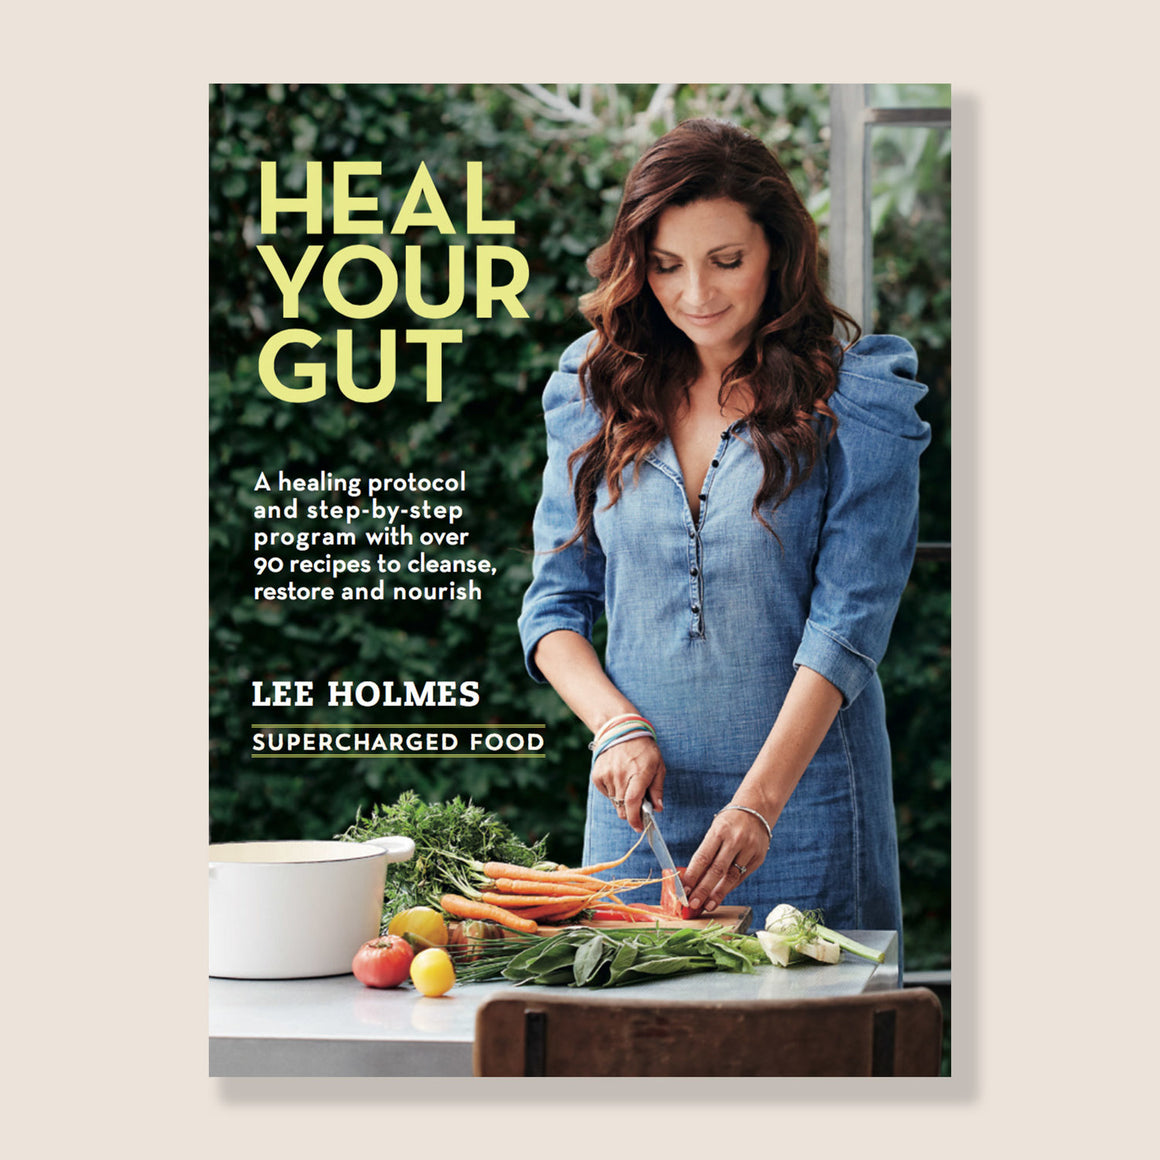 HEAL YOUR GUT BOOK BY LEE HOLMES